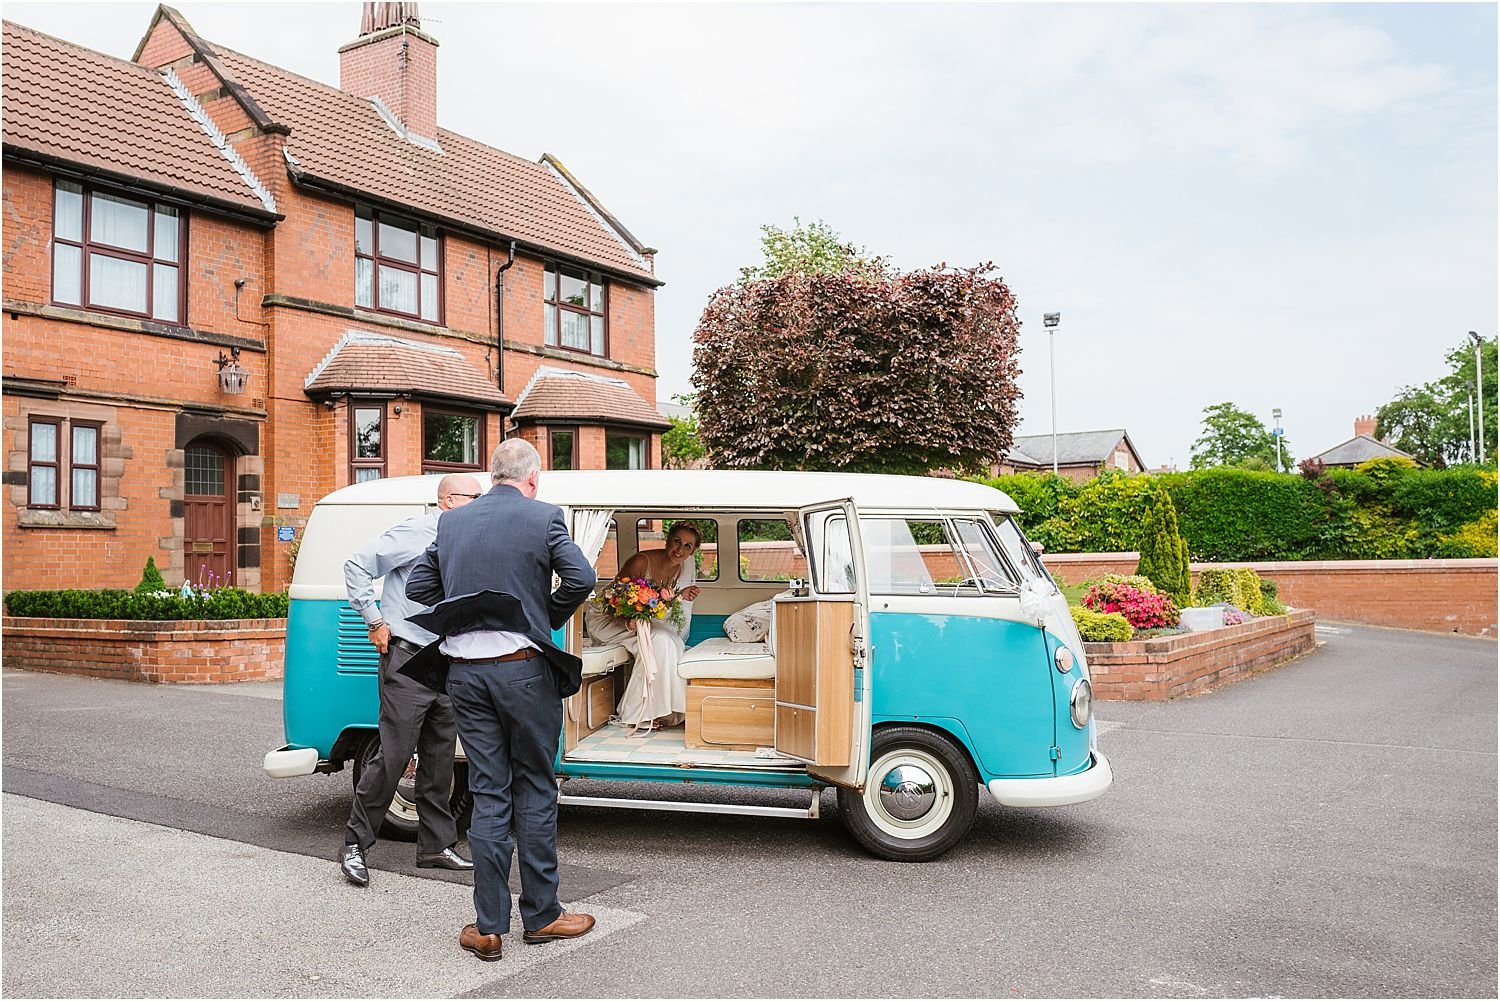 Bride and her father get into camper van hired from Nostalgic Campers, Knutsford Cheshire